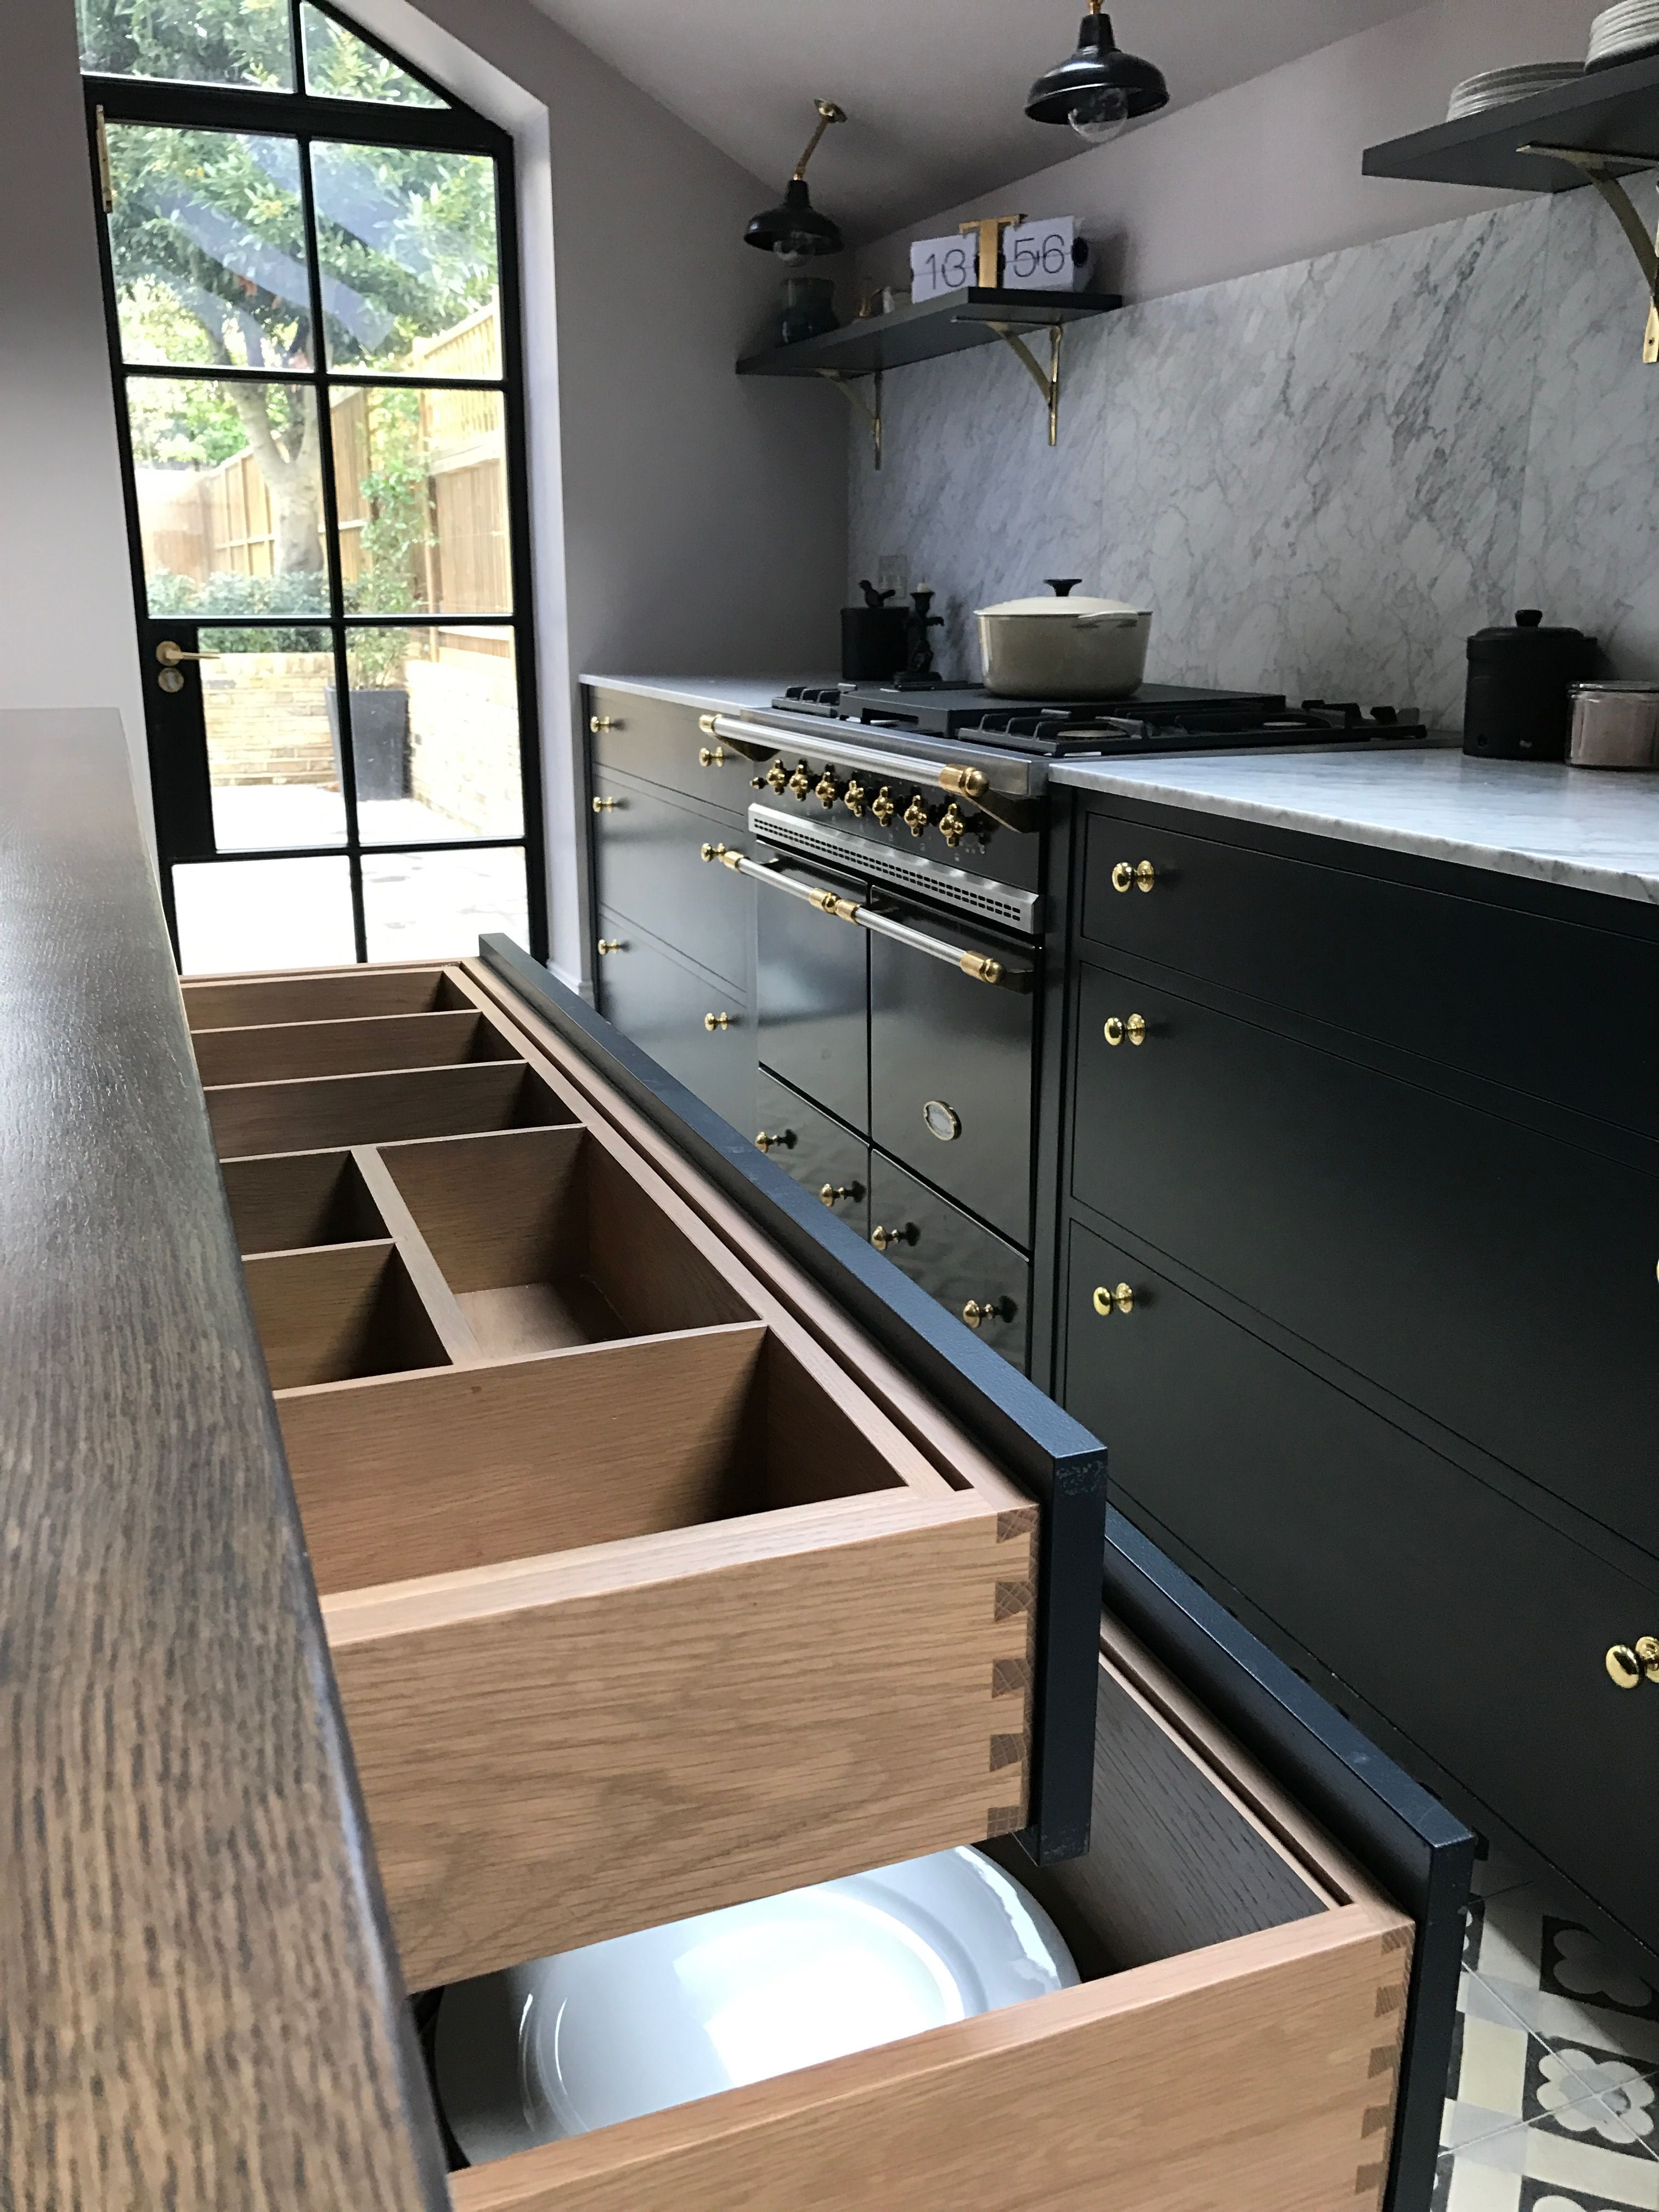 Bespoke kitchen by 202 design with queens park design build painted shaker farrow